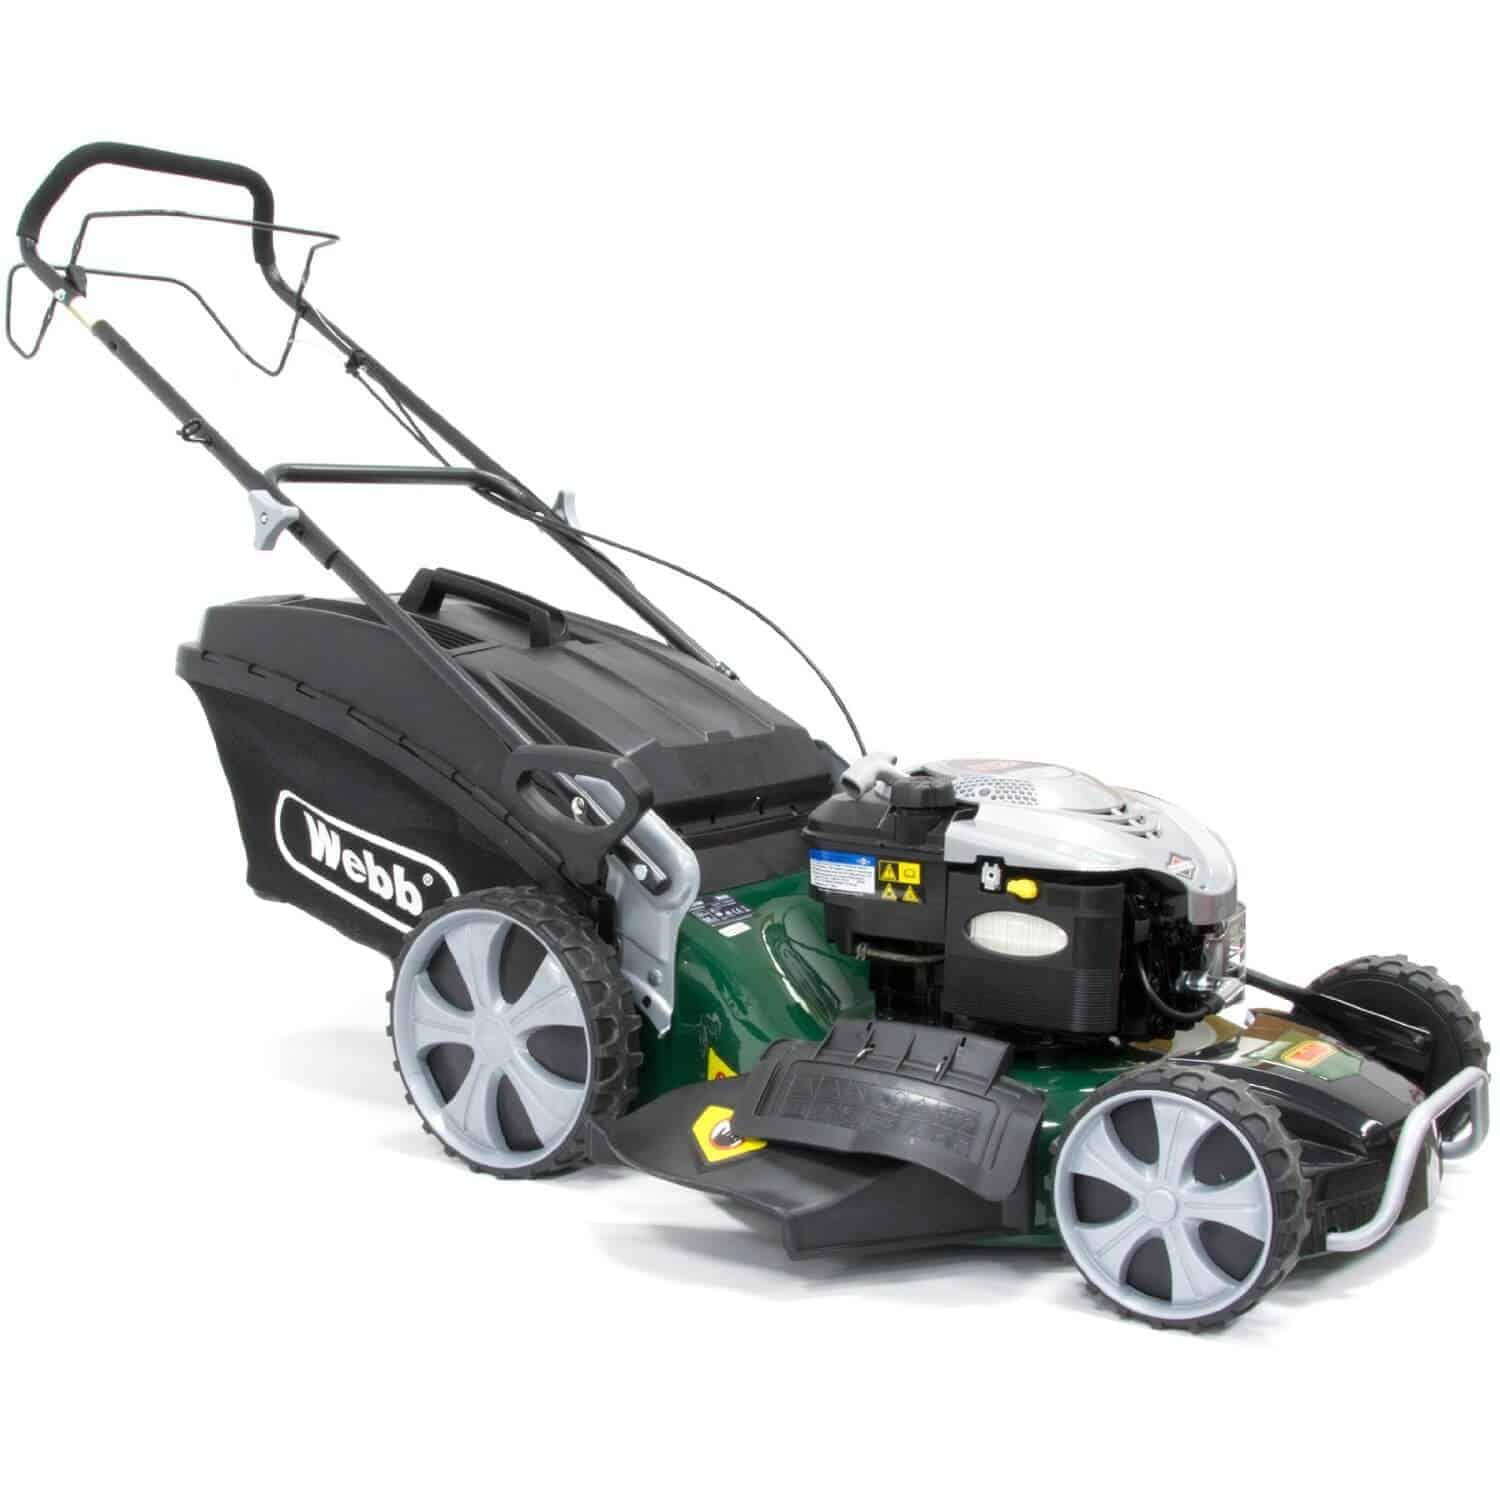 best petrol lawn mowers for uneven ground reviews 2018. Black Bedroom Furniture Sets. Home Design Ideas